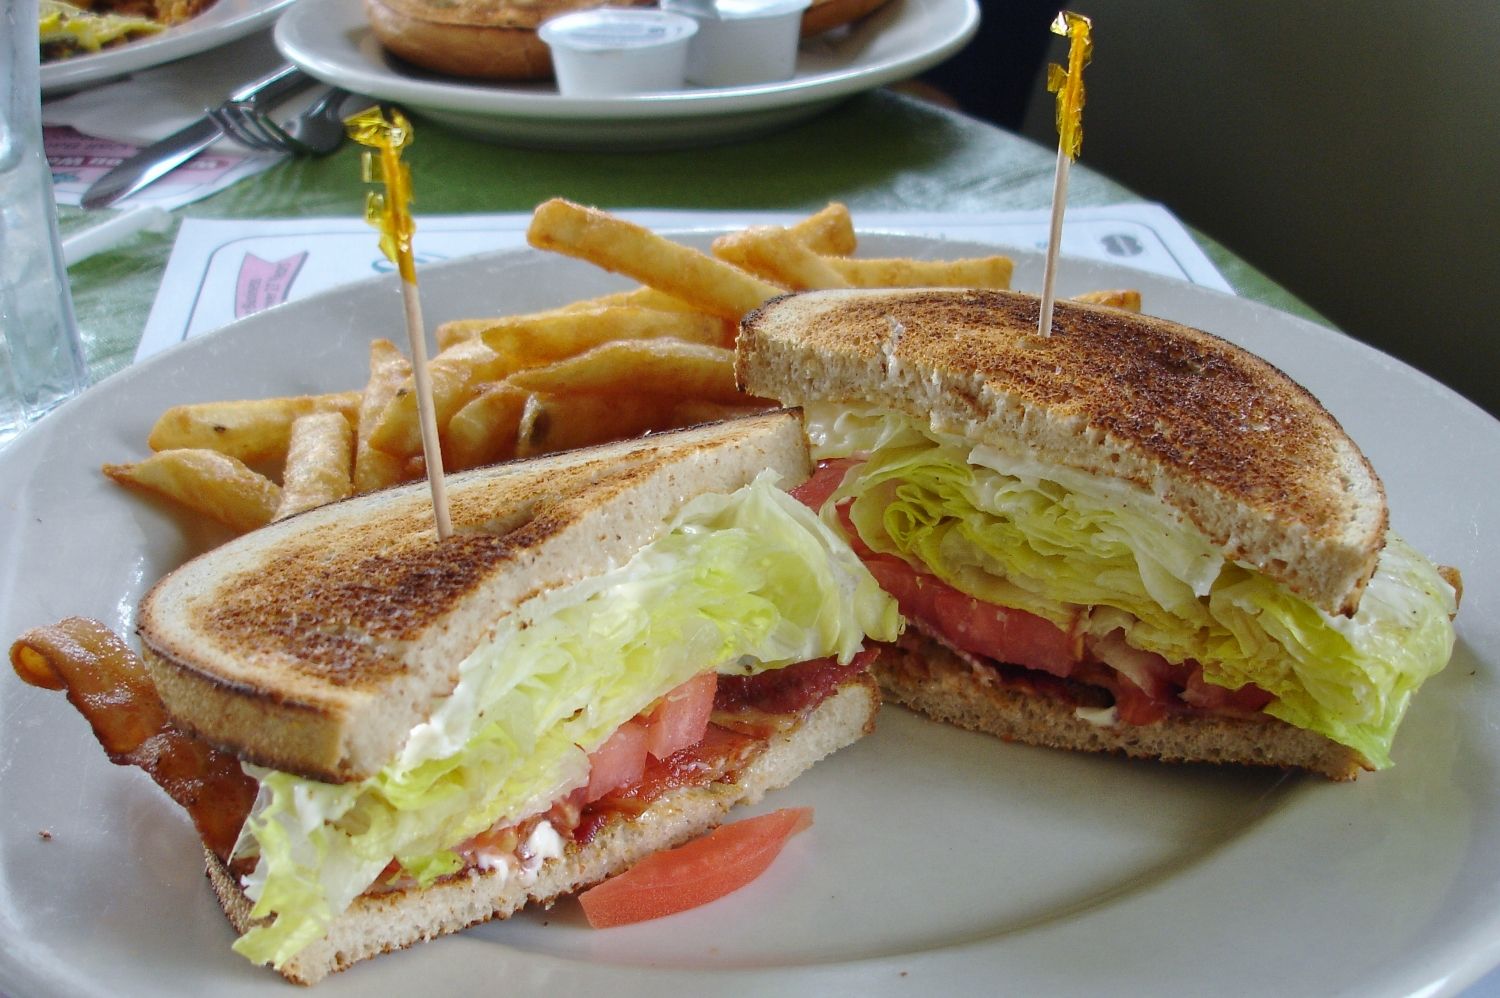 A classic BLT on toasted white could have used more bacon.